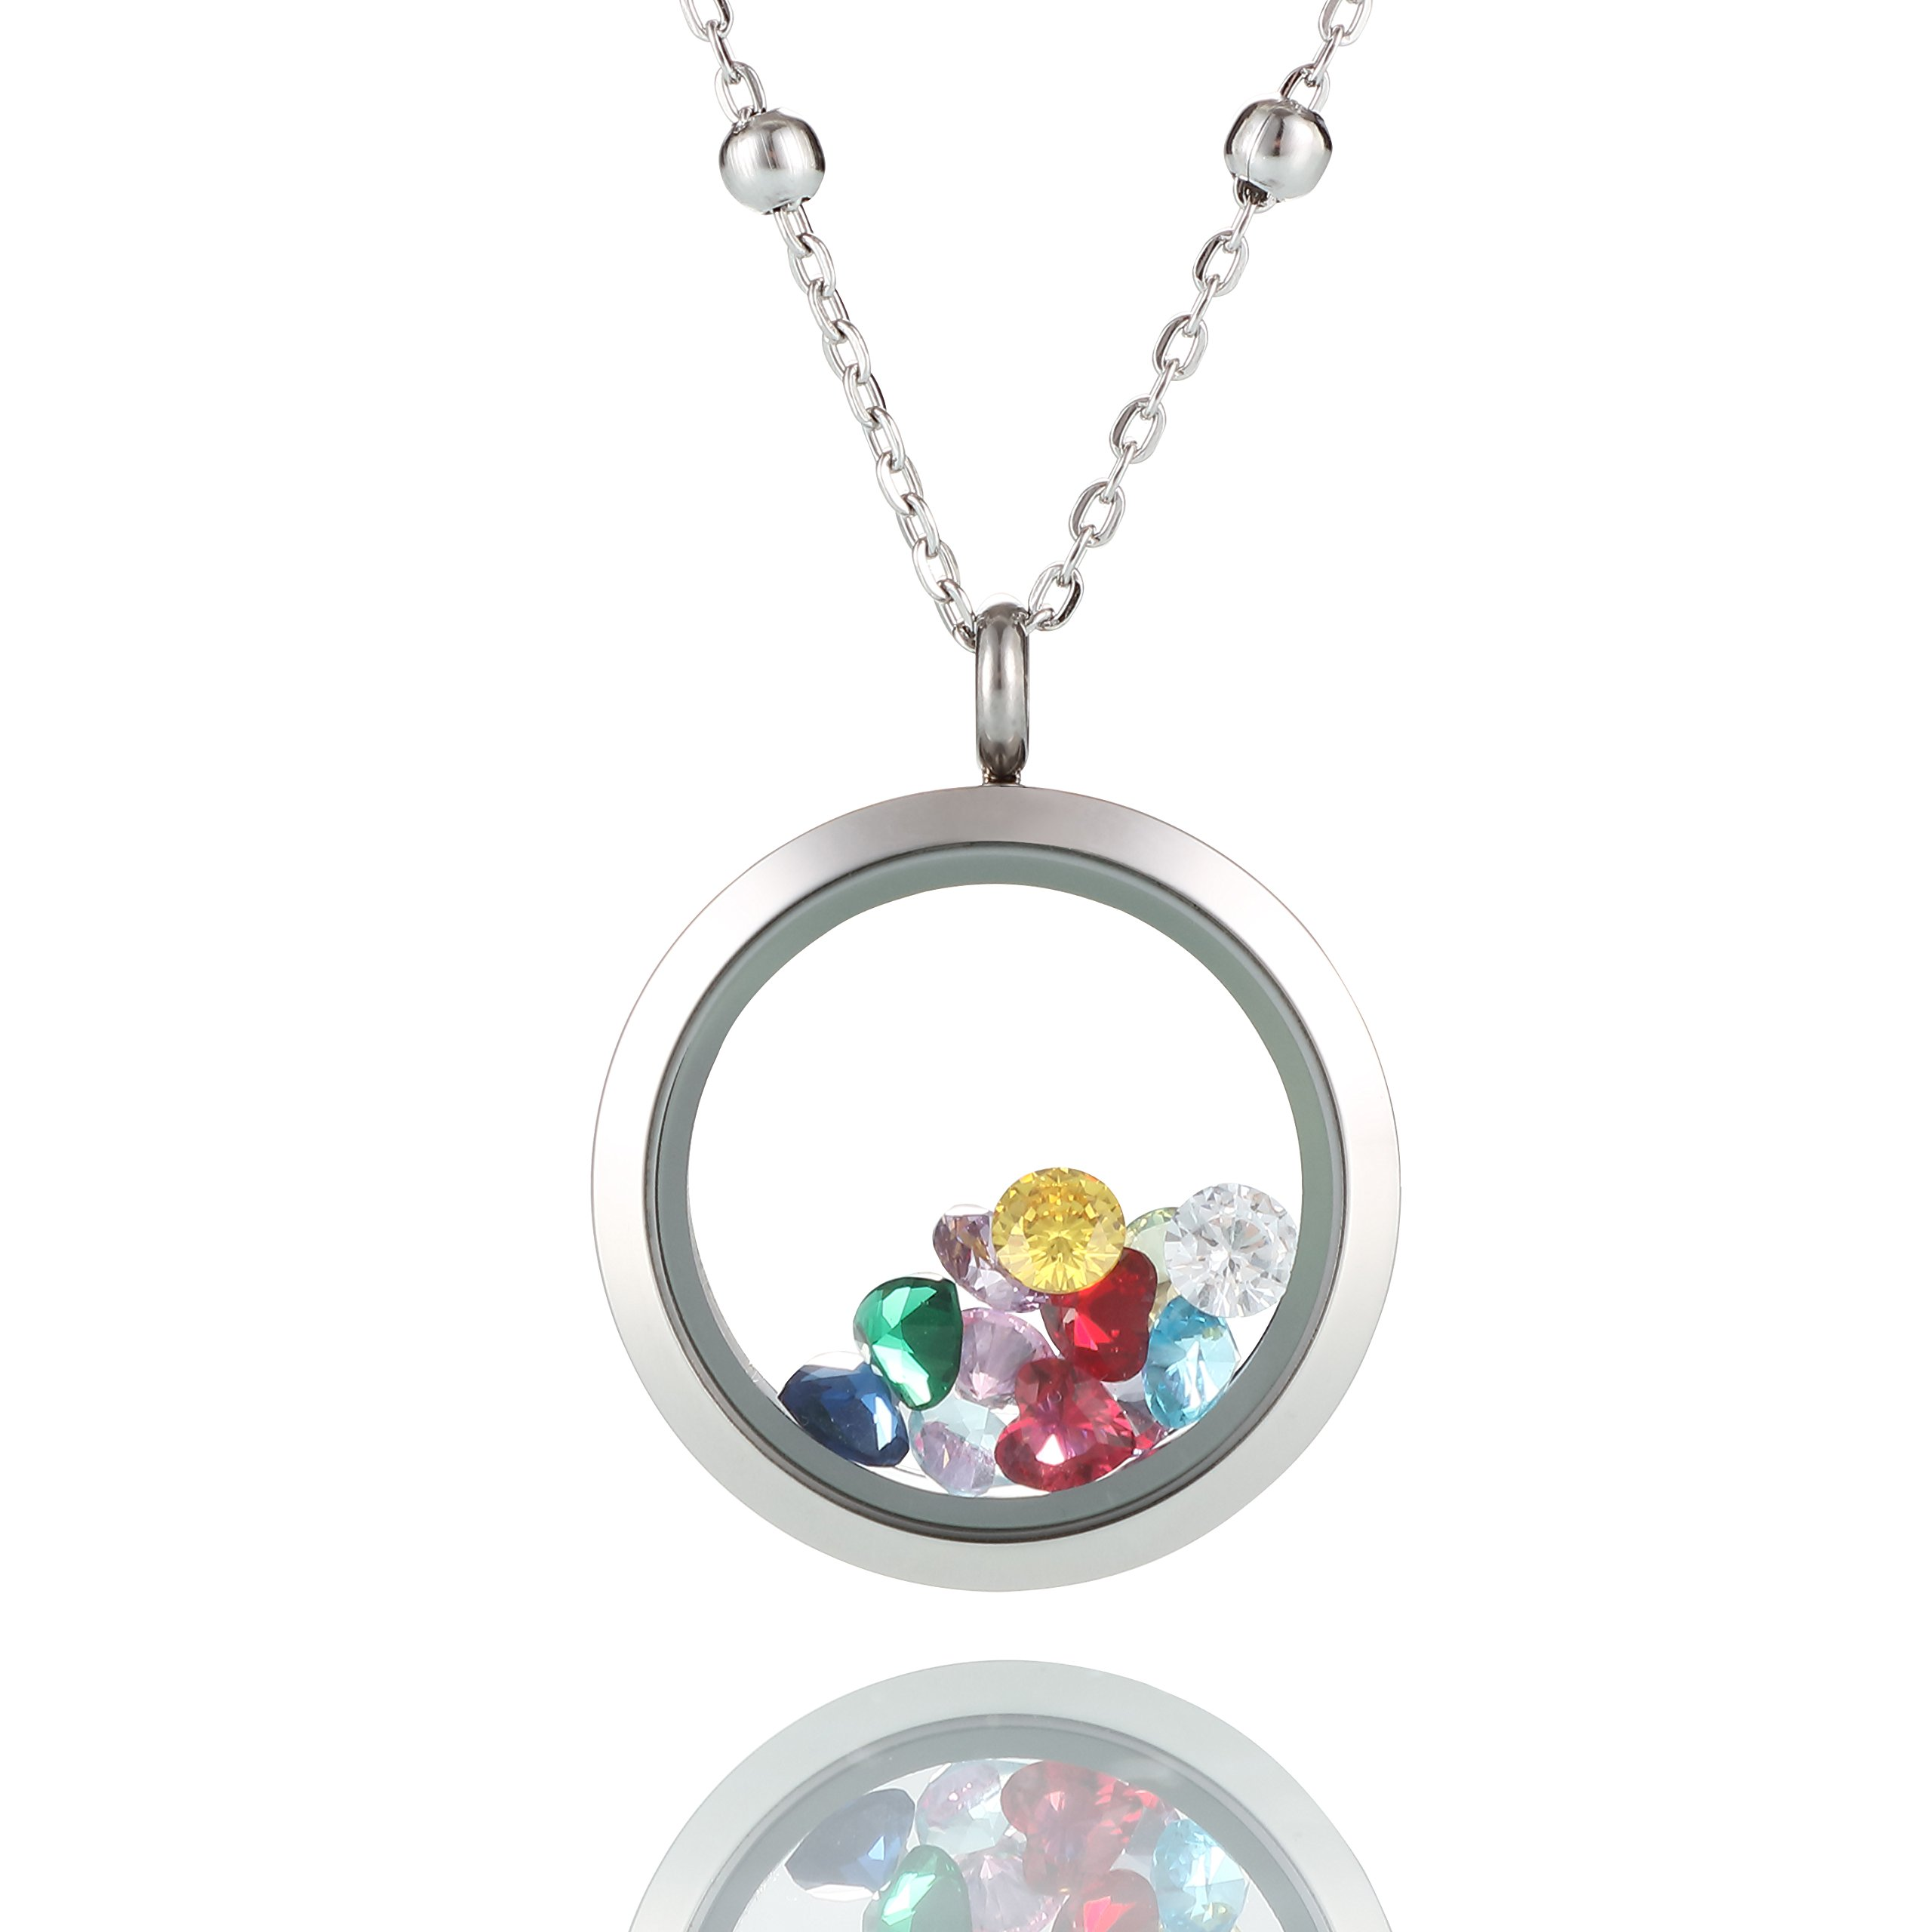 Dream Lassie Living Memory Floating Charm Locket Pendant Necklace for Girls Womens Stainless Steel Toughened Glass Chain and Zircon Include